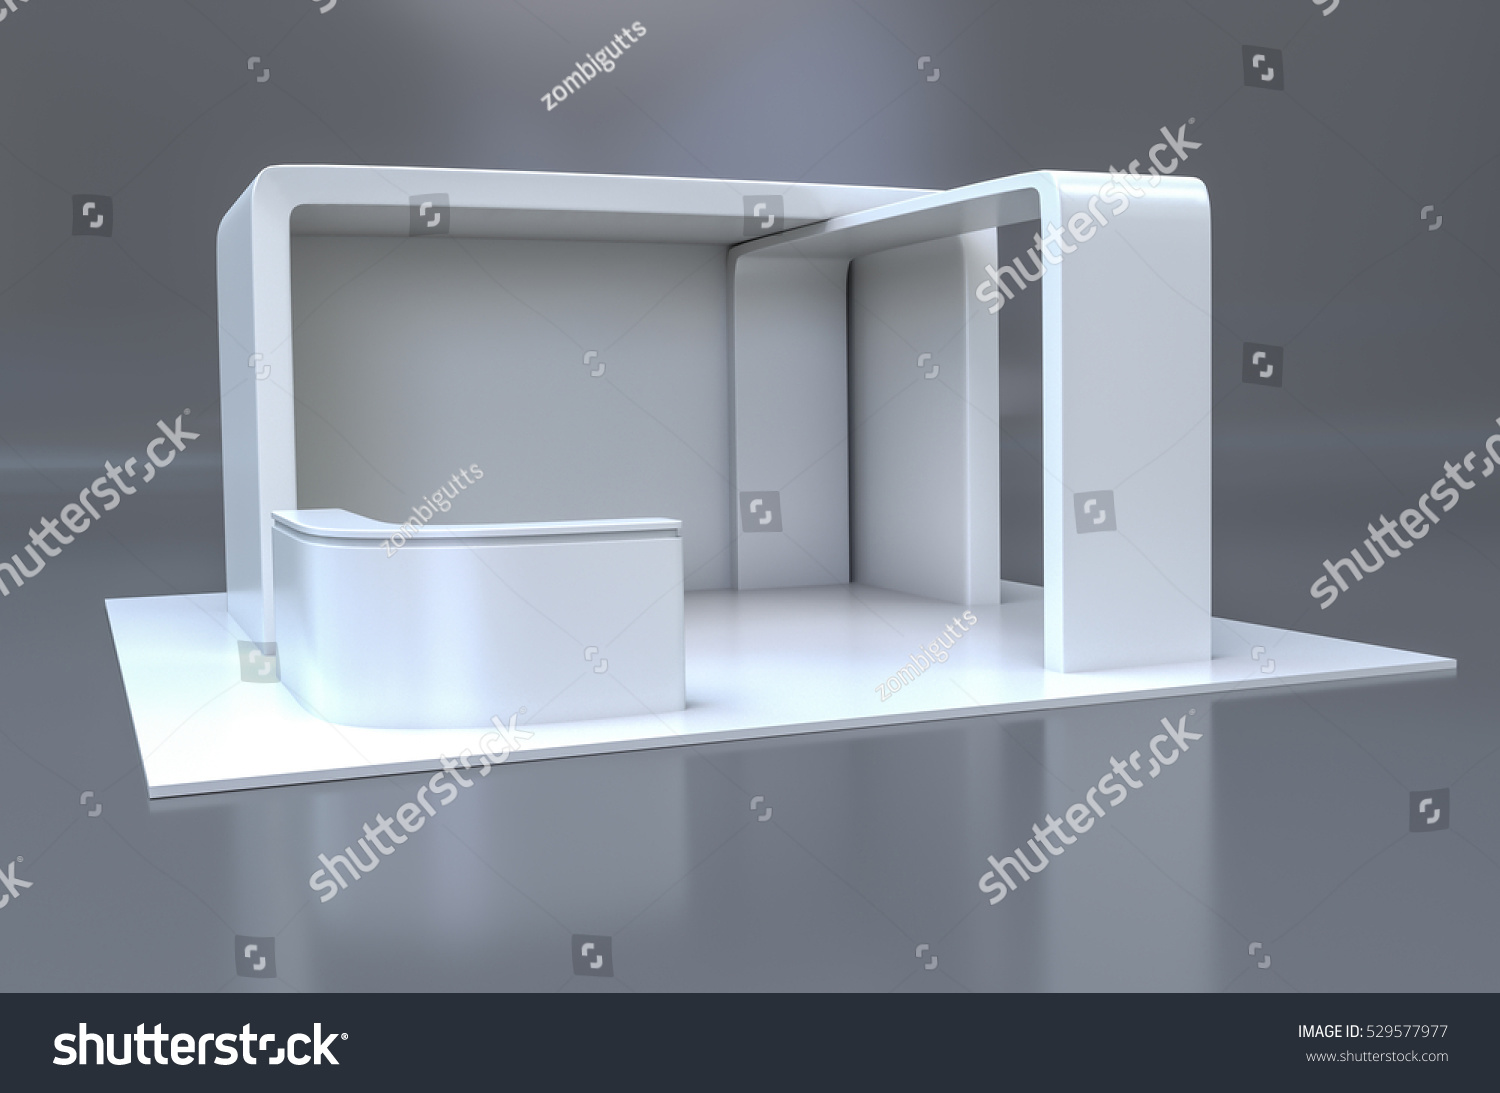 Exhibition Stand Design Illustrator : Exhibition stand plain white used mockups stock